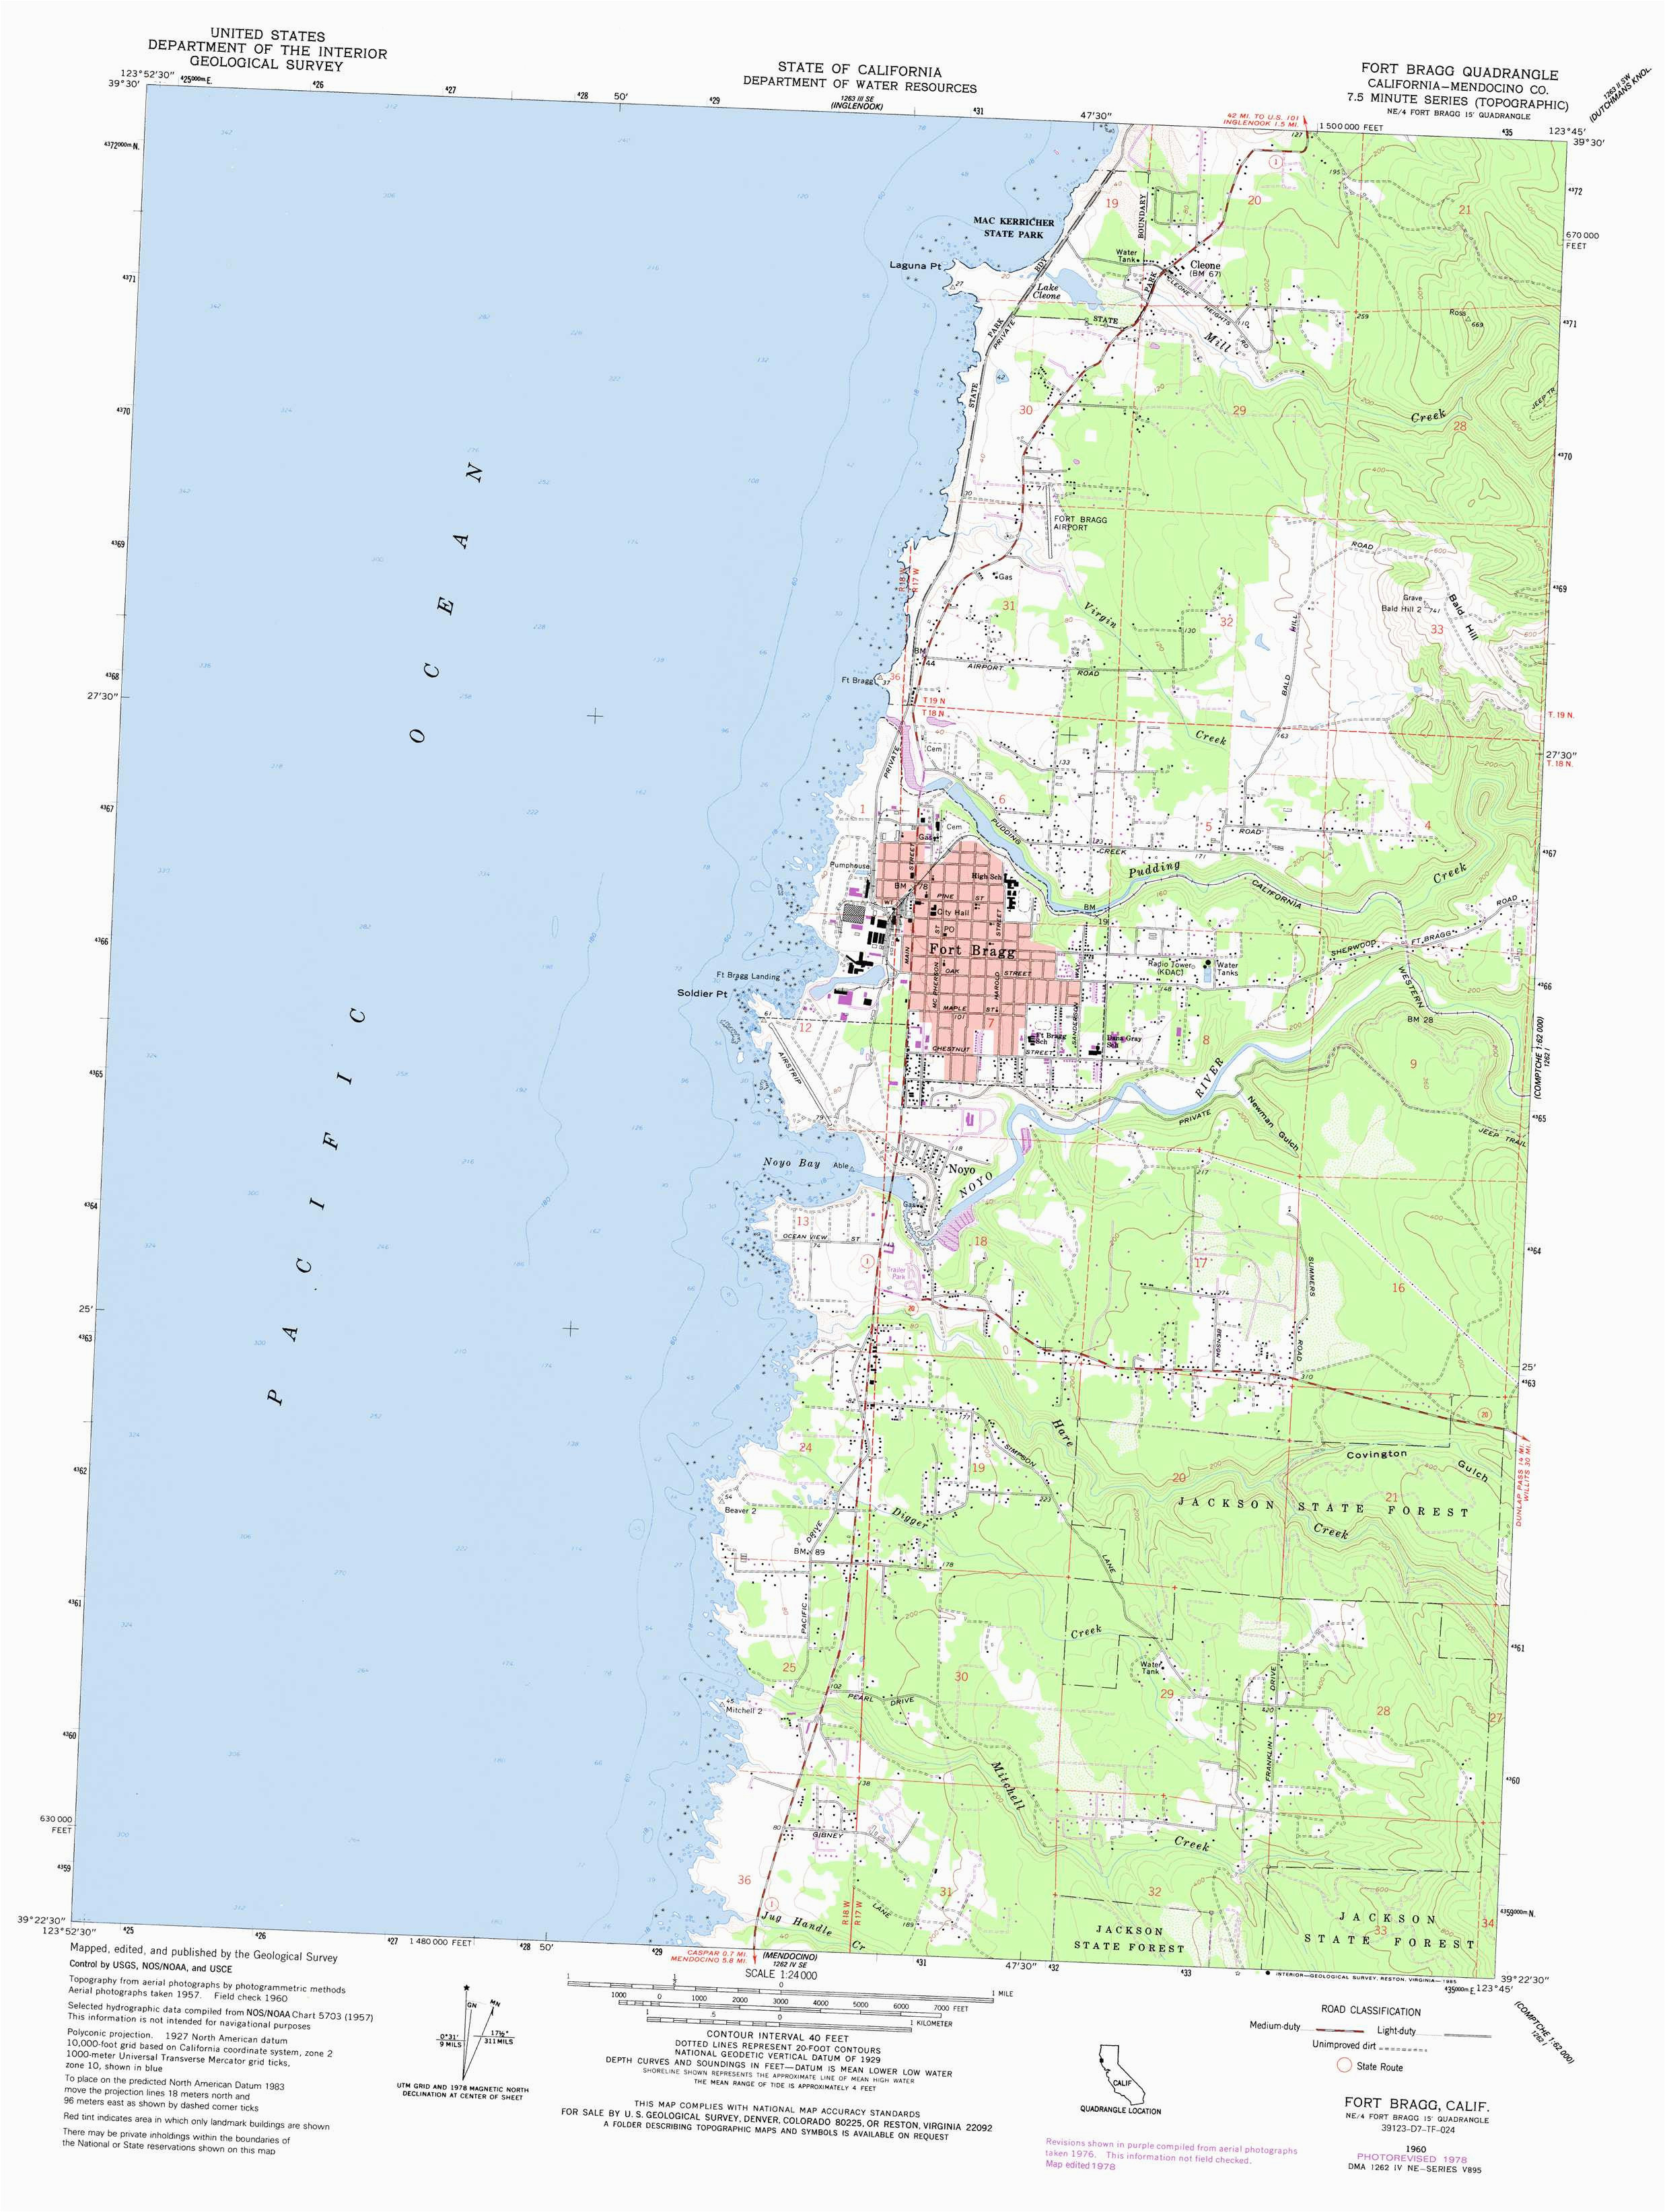 California Prison Map Map Of North Hollywood California - California Prisons Map